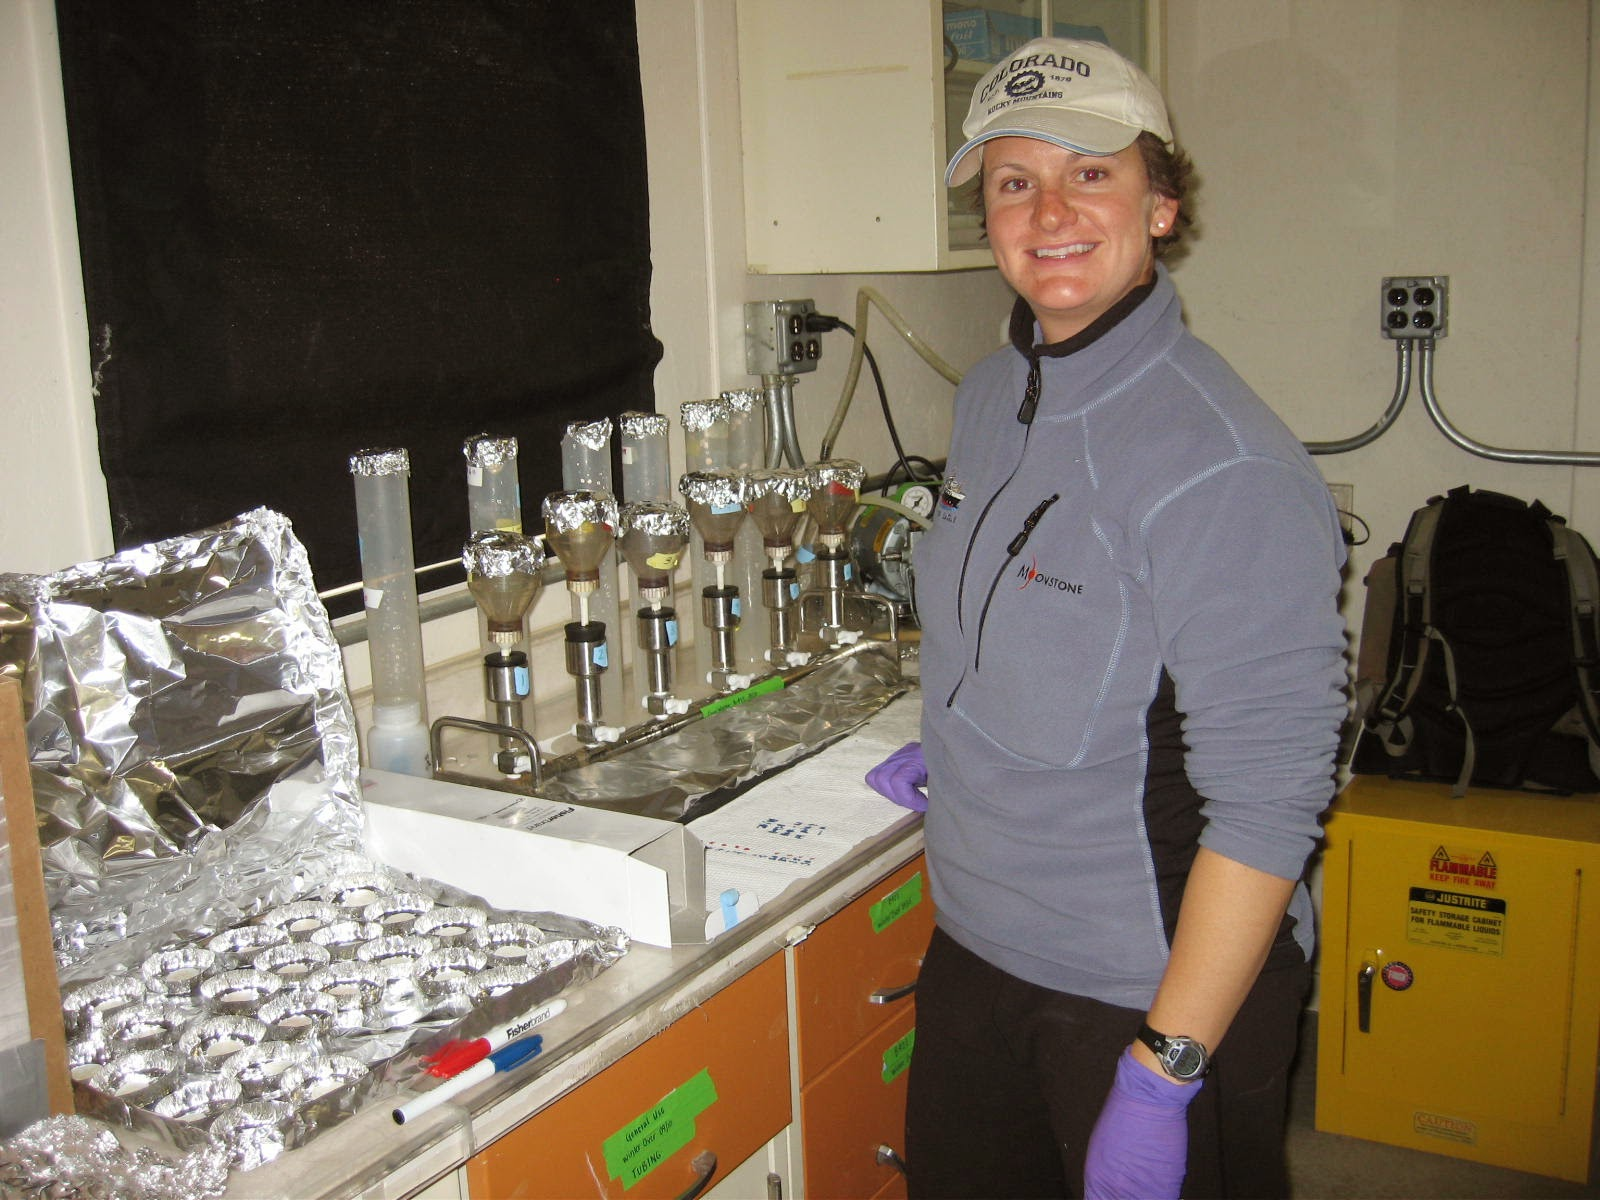 Jess Ackerman filters for particulate carbon, nitrogen and phosphorus in a lab at Lake Hoare